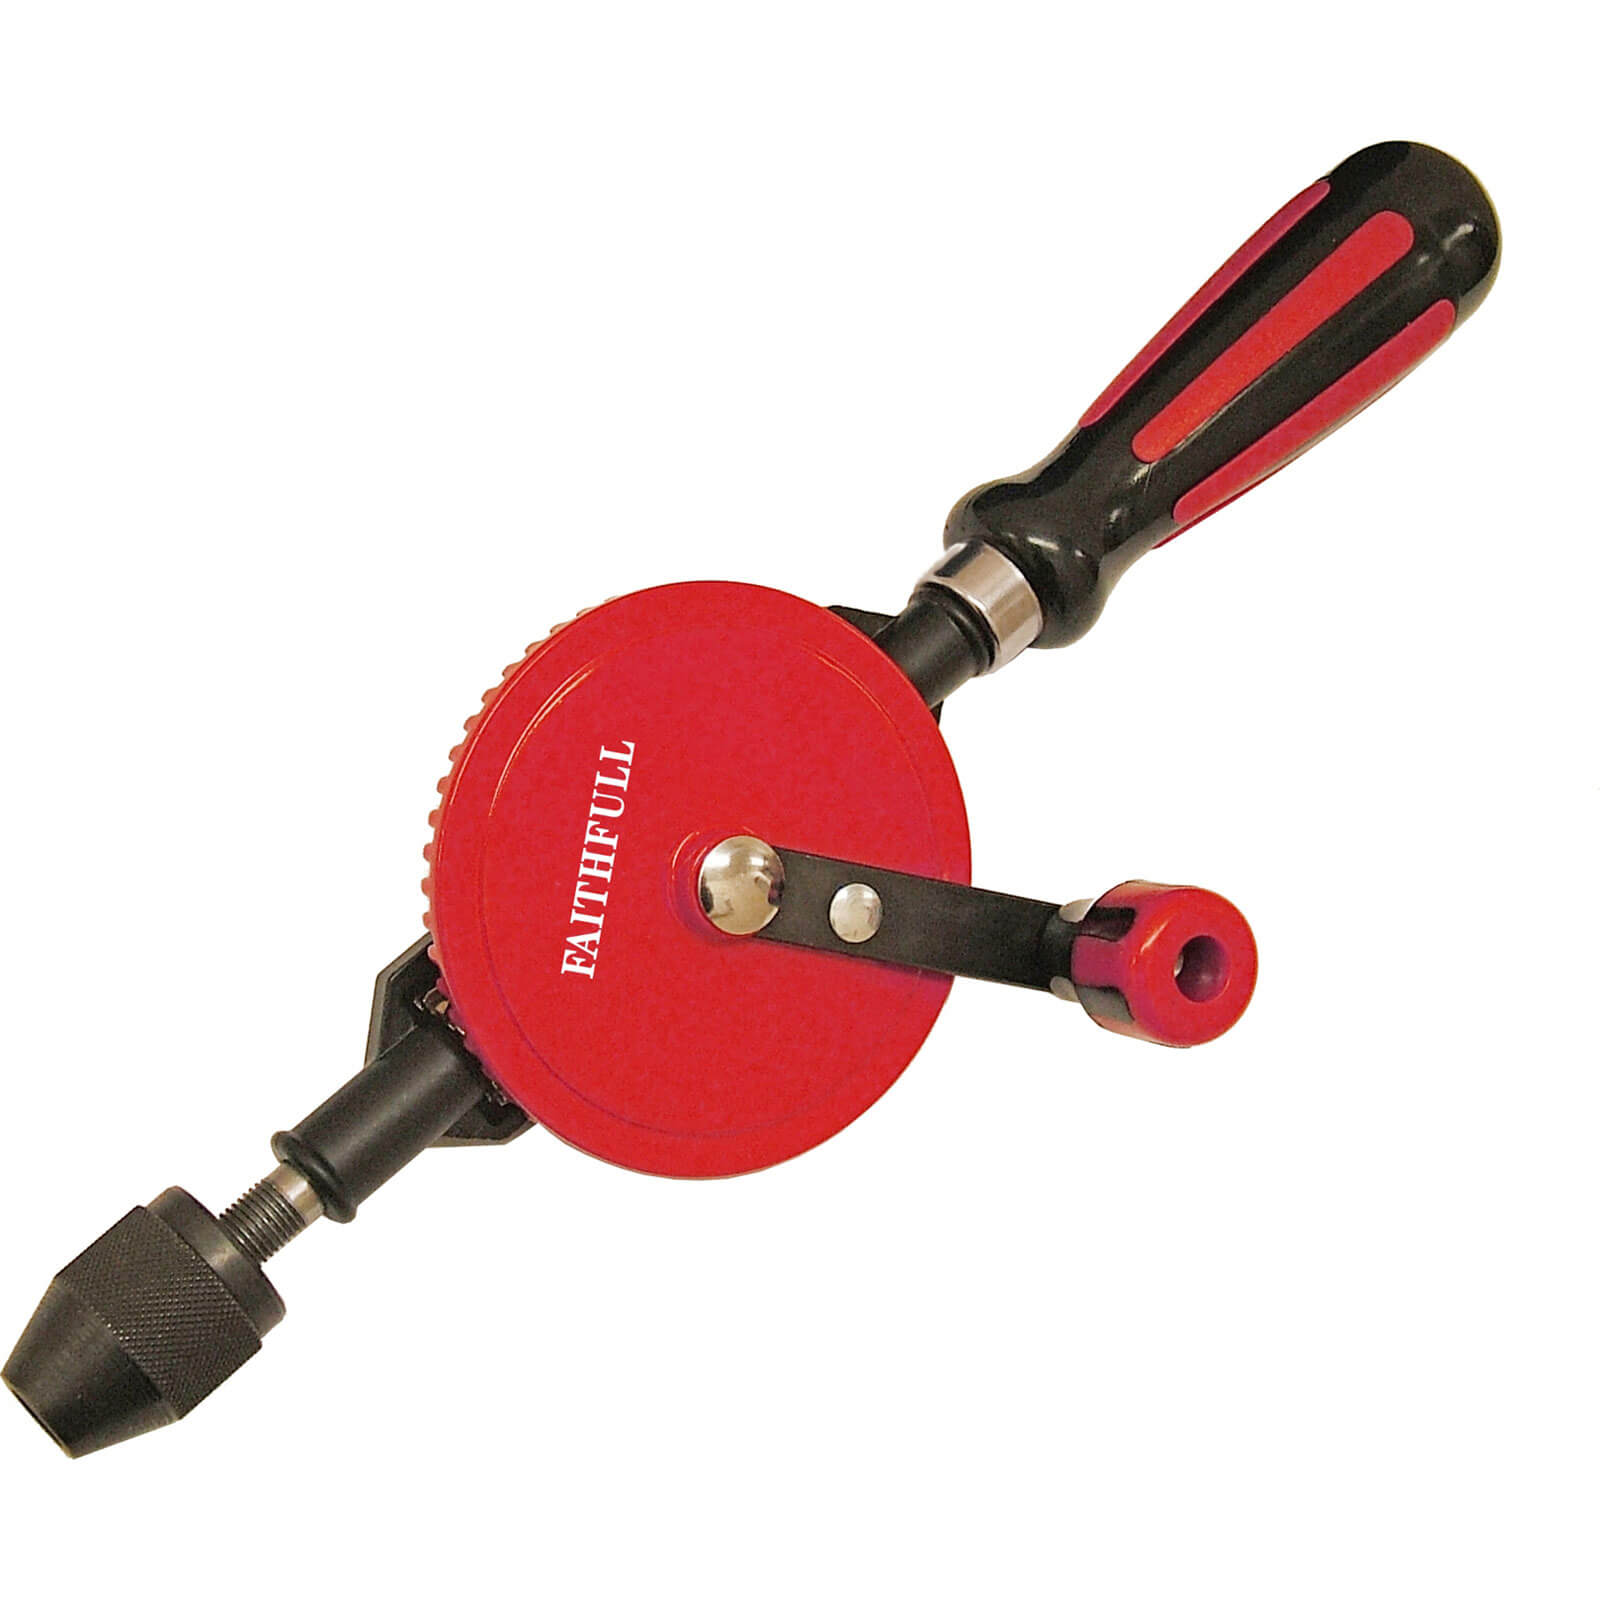 Image of Faithfull Double Pinion Hand Drill